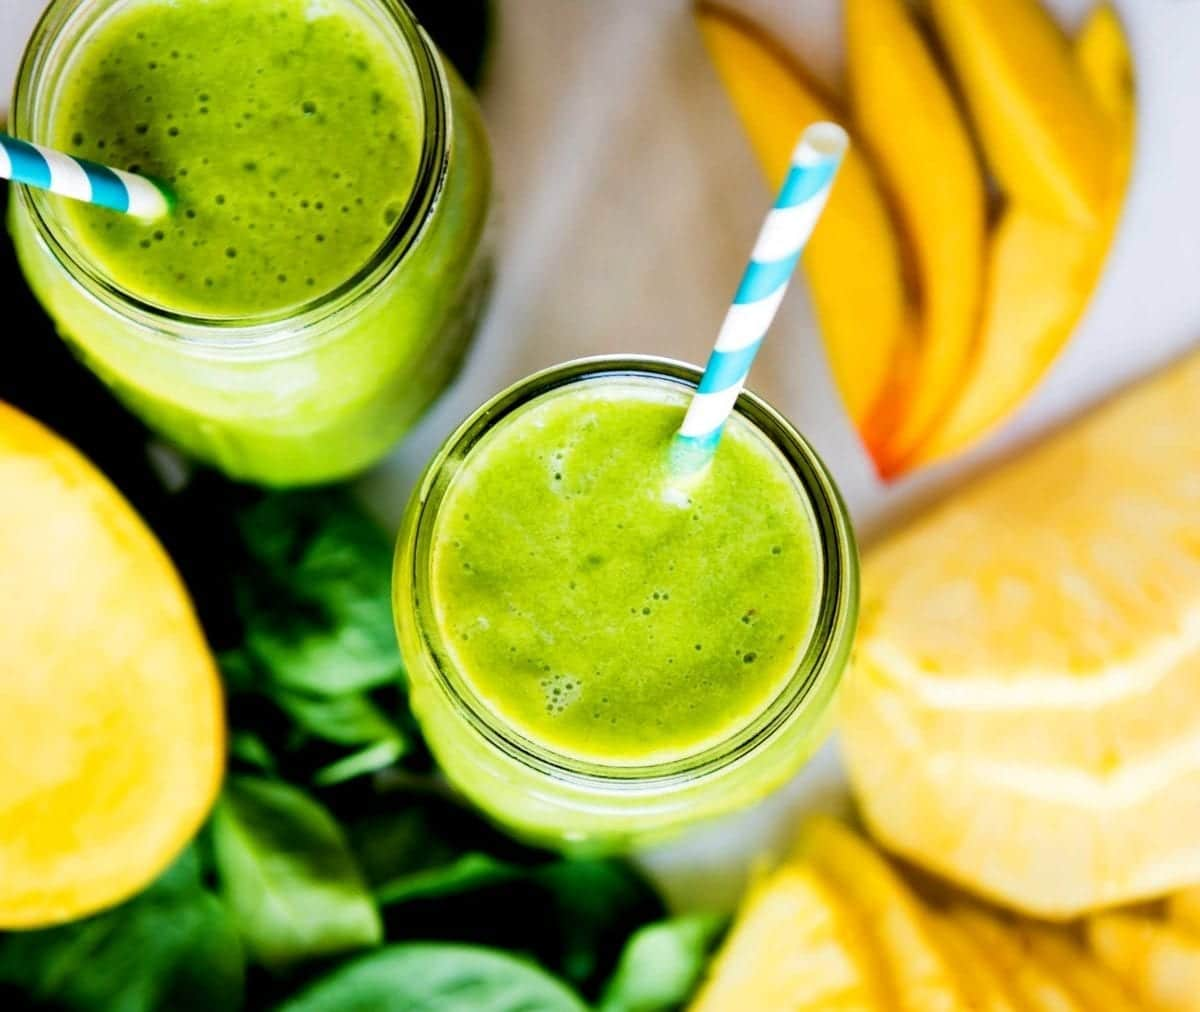 Beginner friendly green smoothie